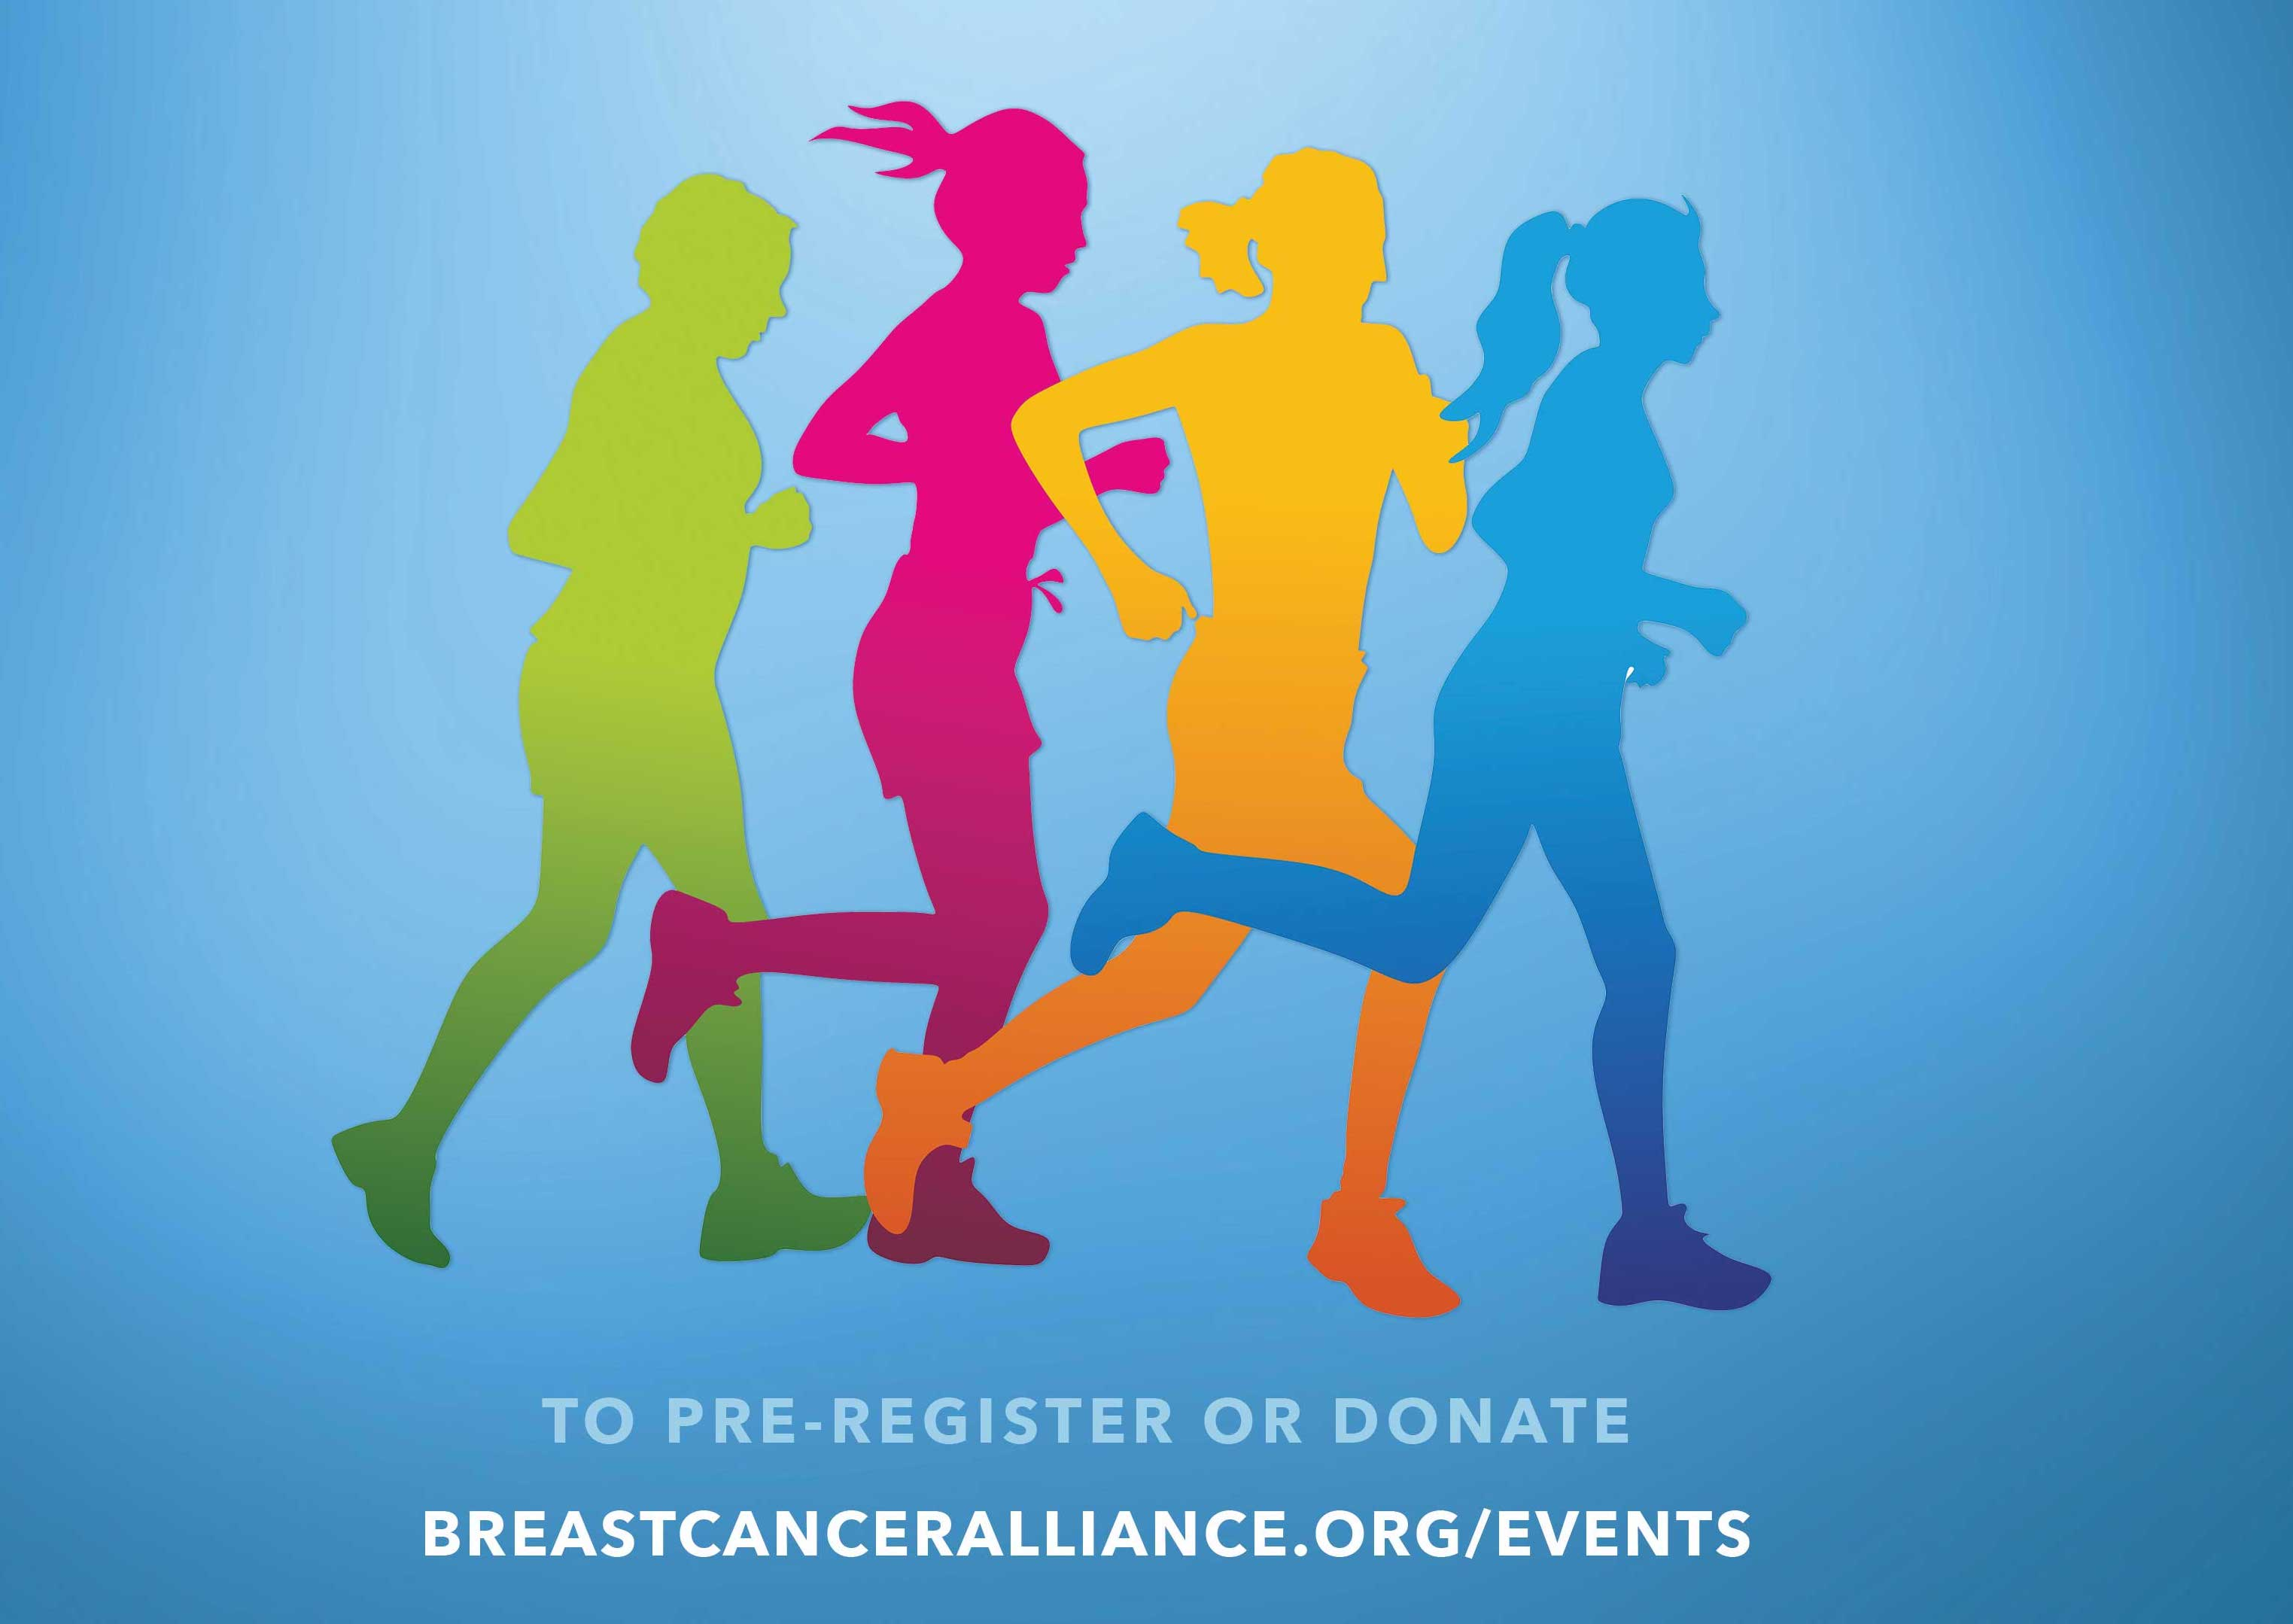 Breast Cancer Alliance Get Fit For Hope Challenge – Where You Live